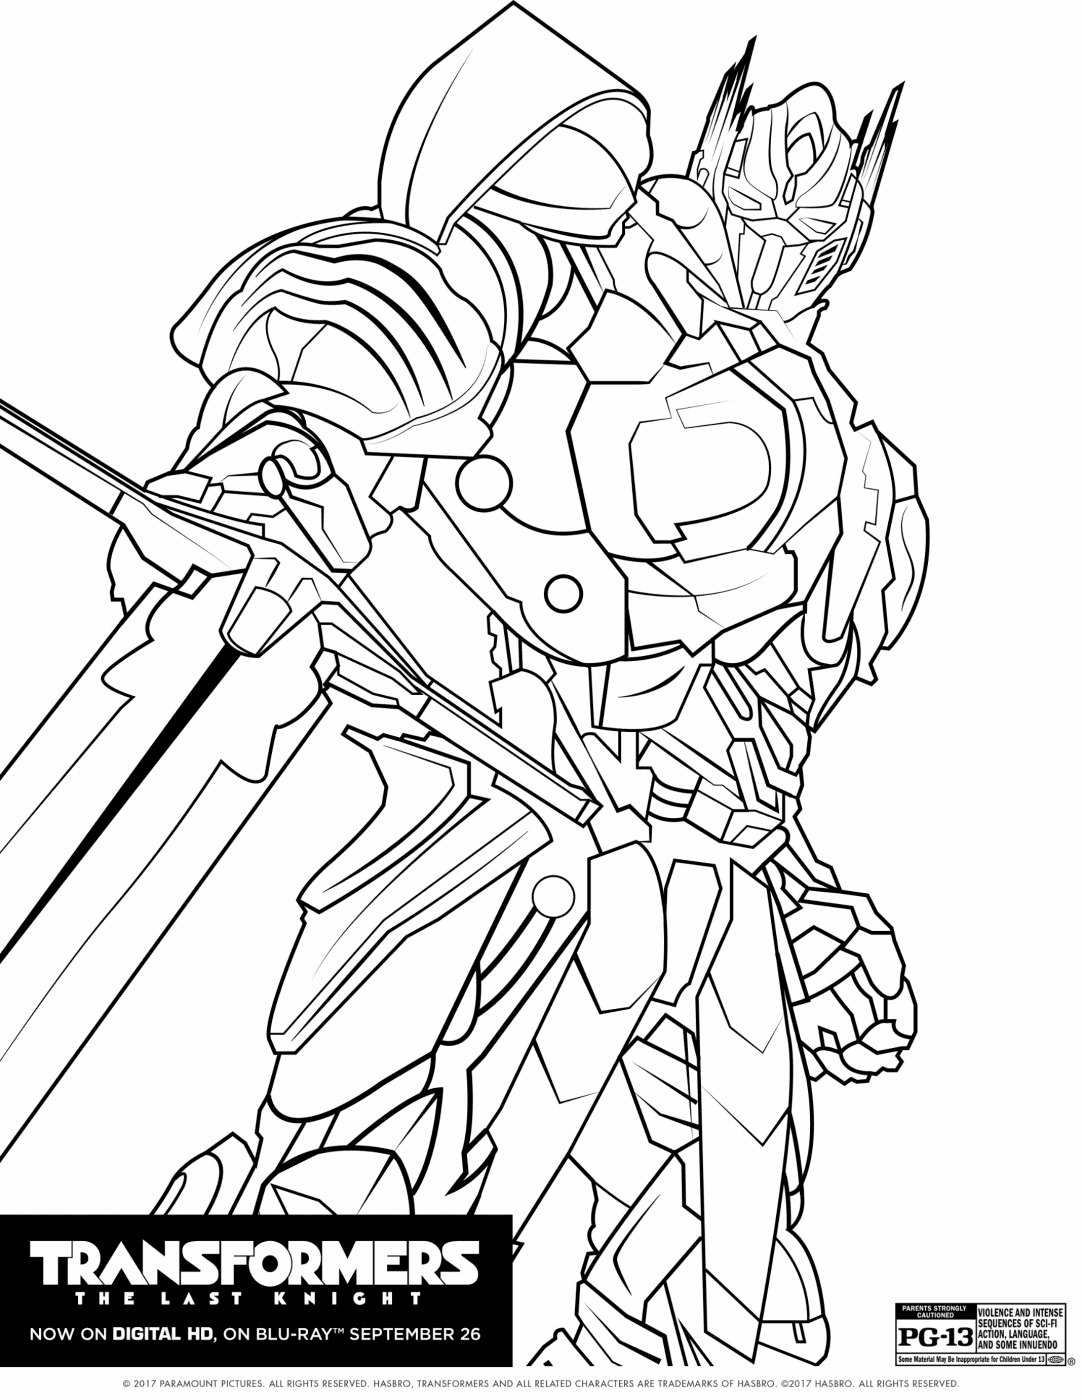 transformers the last knight coloring sheet transformers the last knight coloring sheet - Knight Coloring Pages